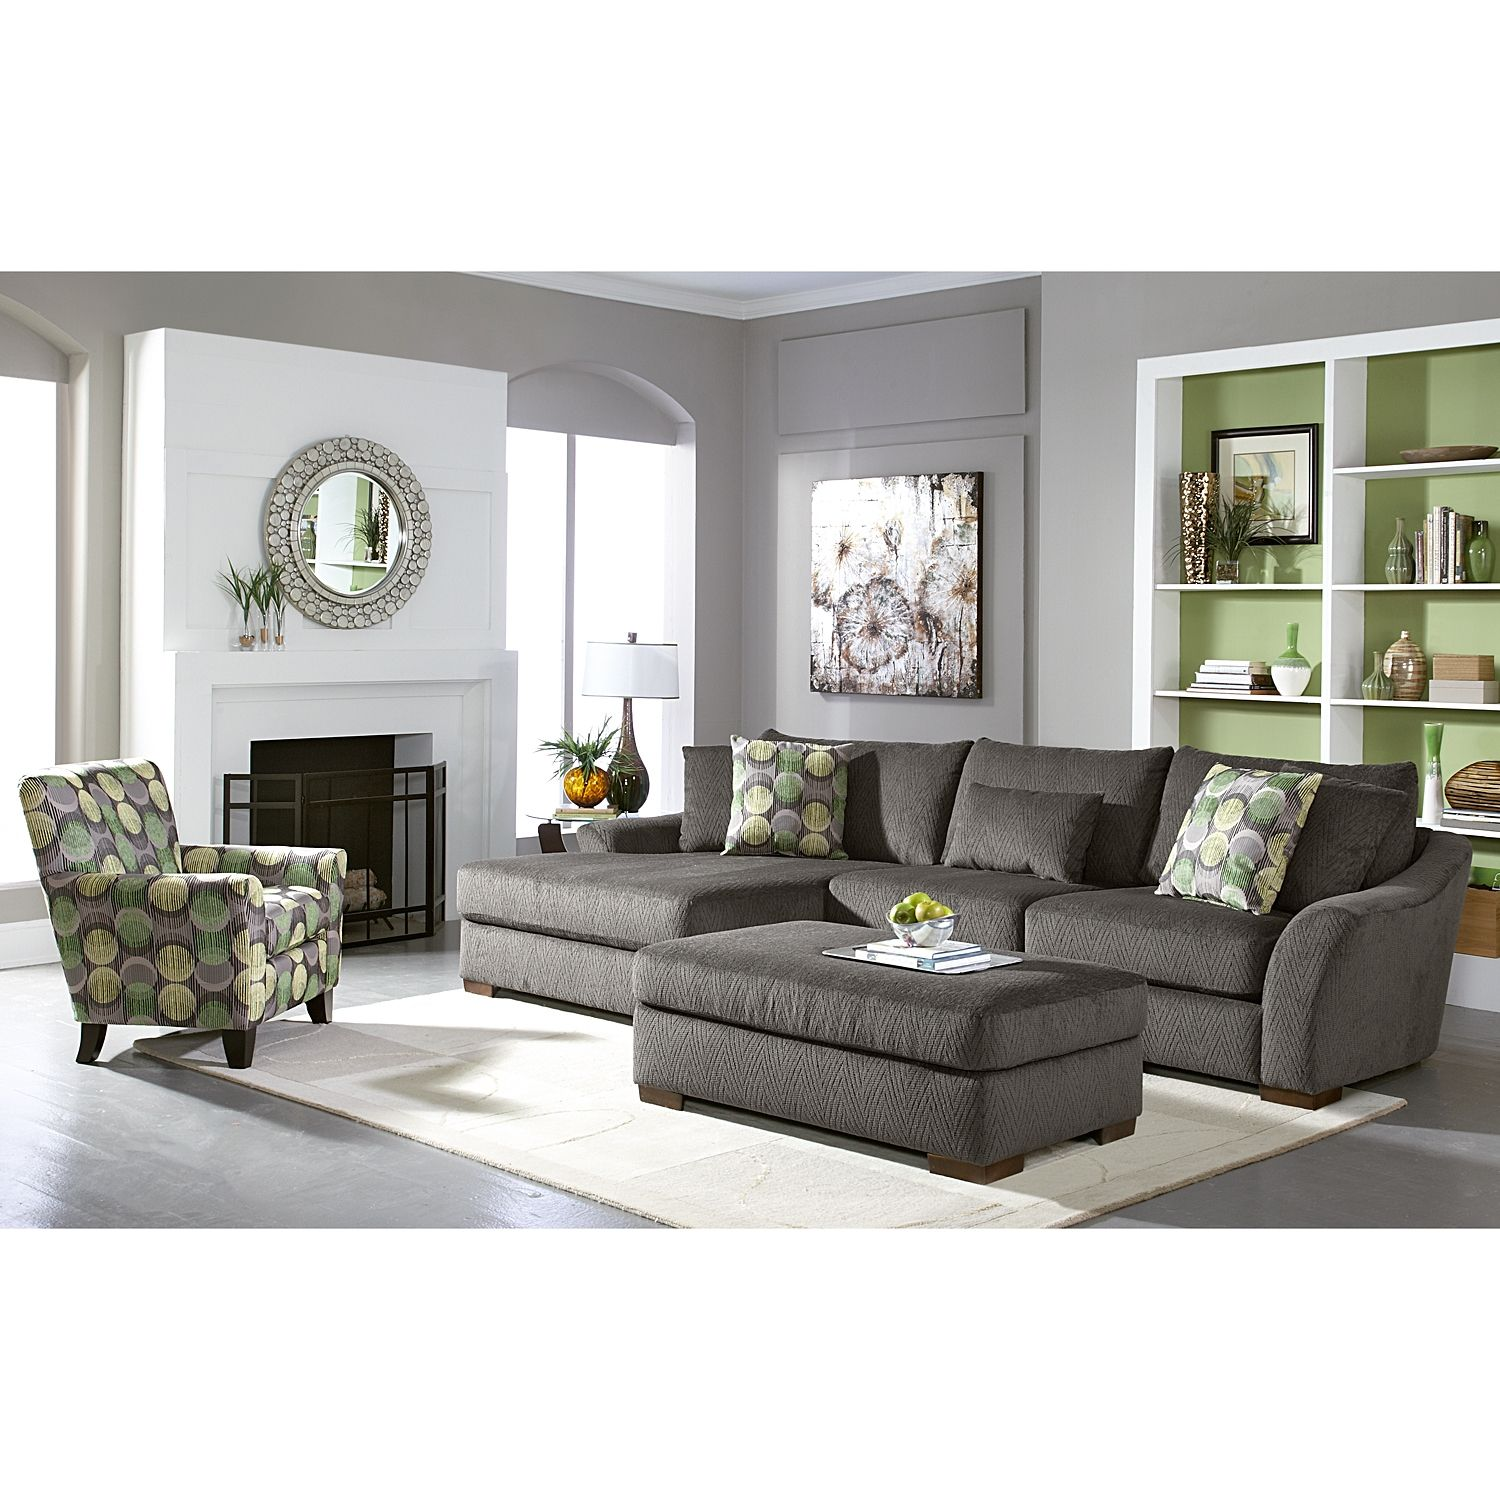 Living Room Pc Exterior Awesome Living Room Furniture  Oasis 2 Pcsectional  For The Home . Inspiration Design